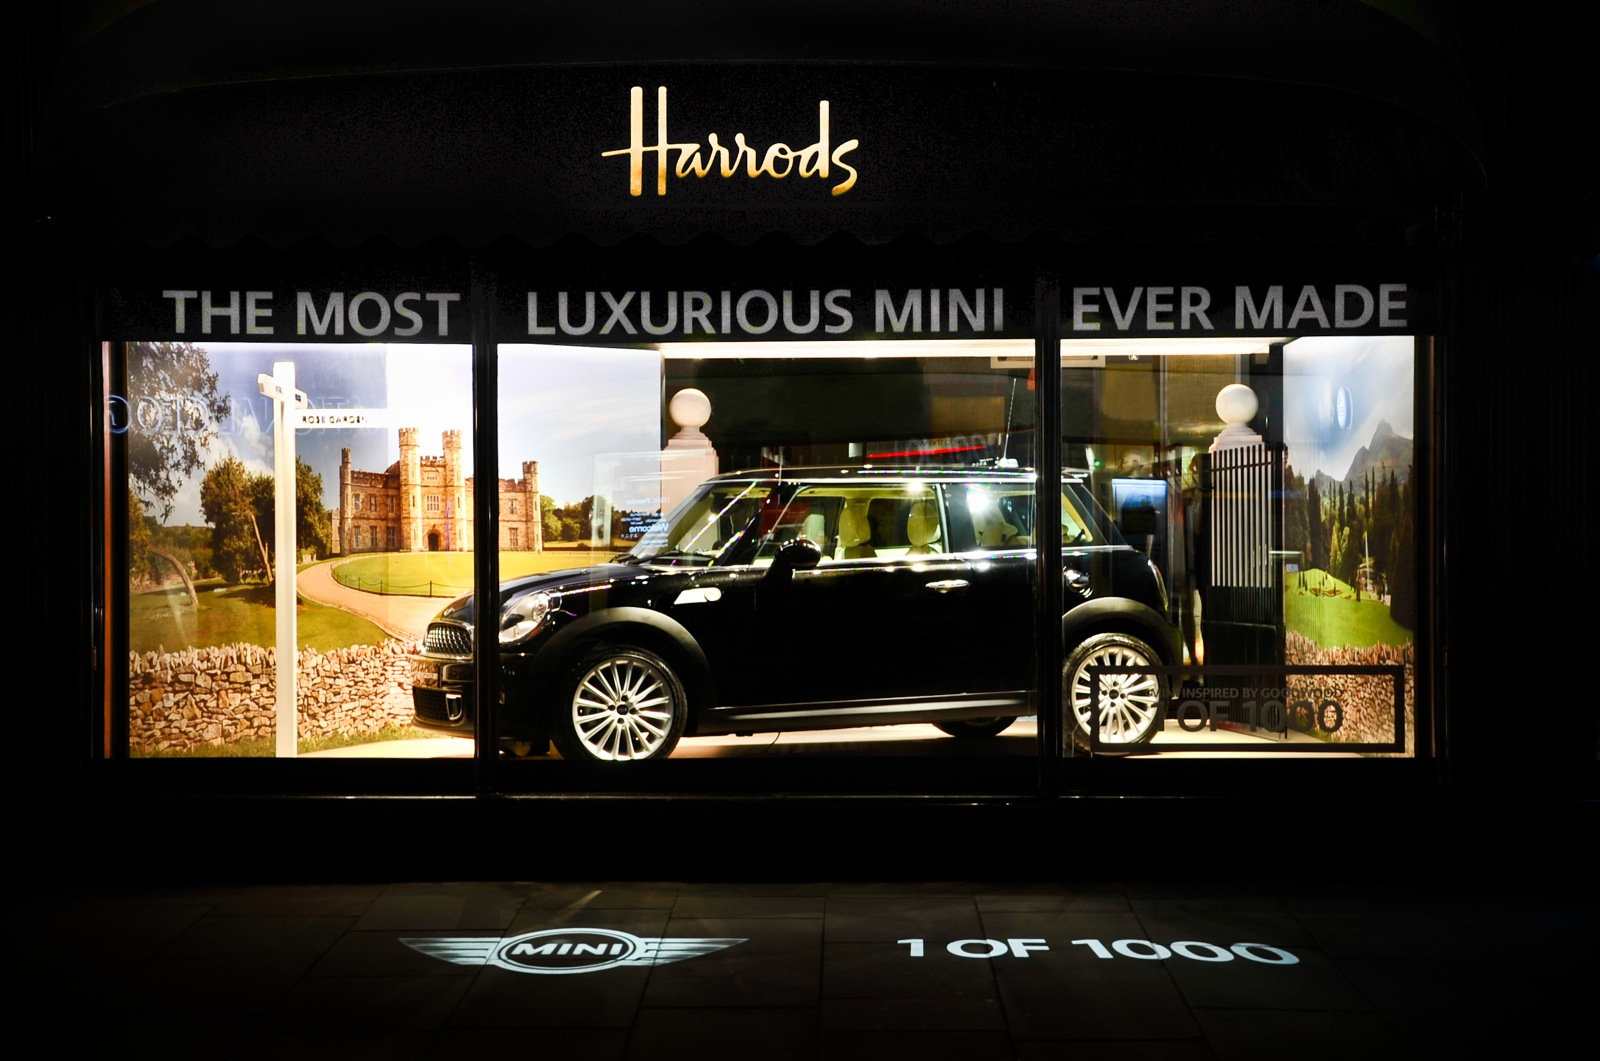 MINI Inspired By Goodwood On Display At Harrods Department